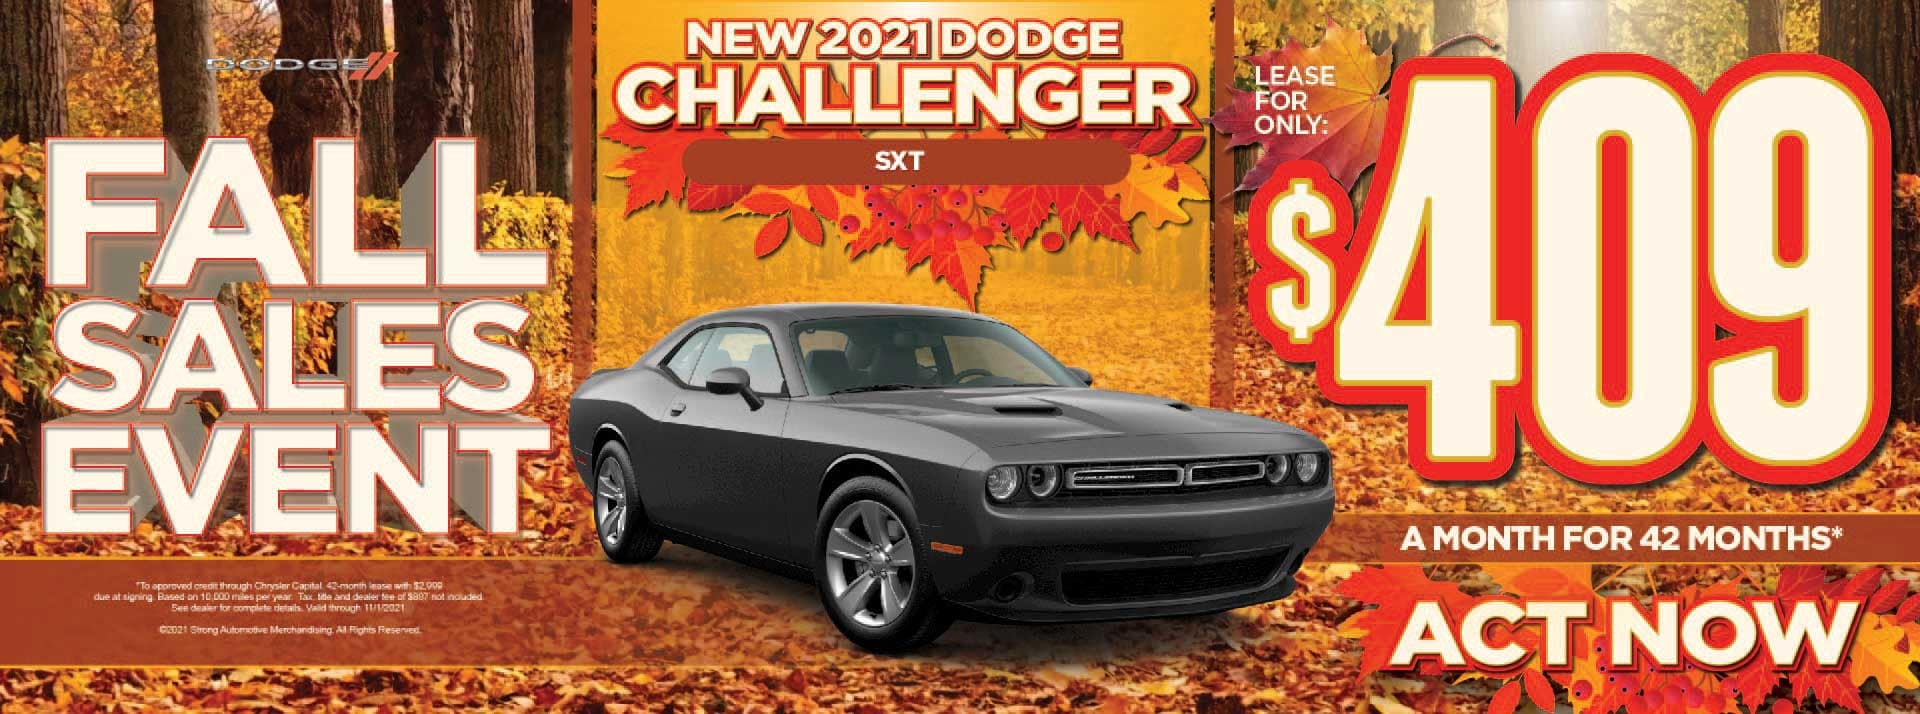 New 2021 Dodge Challenger SXT - $409 / mo ACT NOW